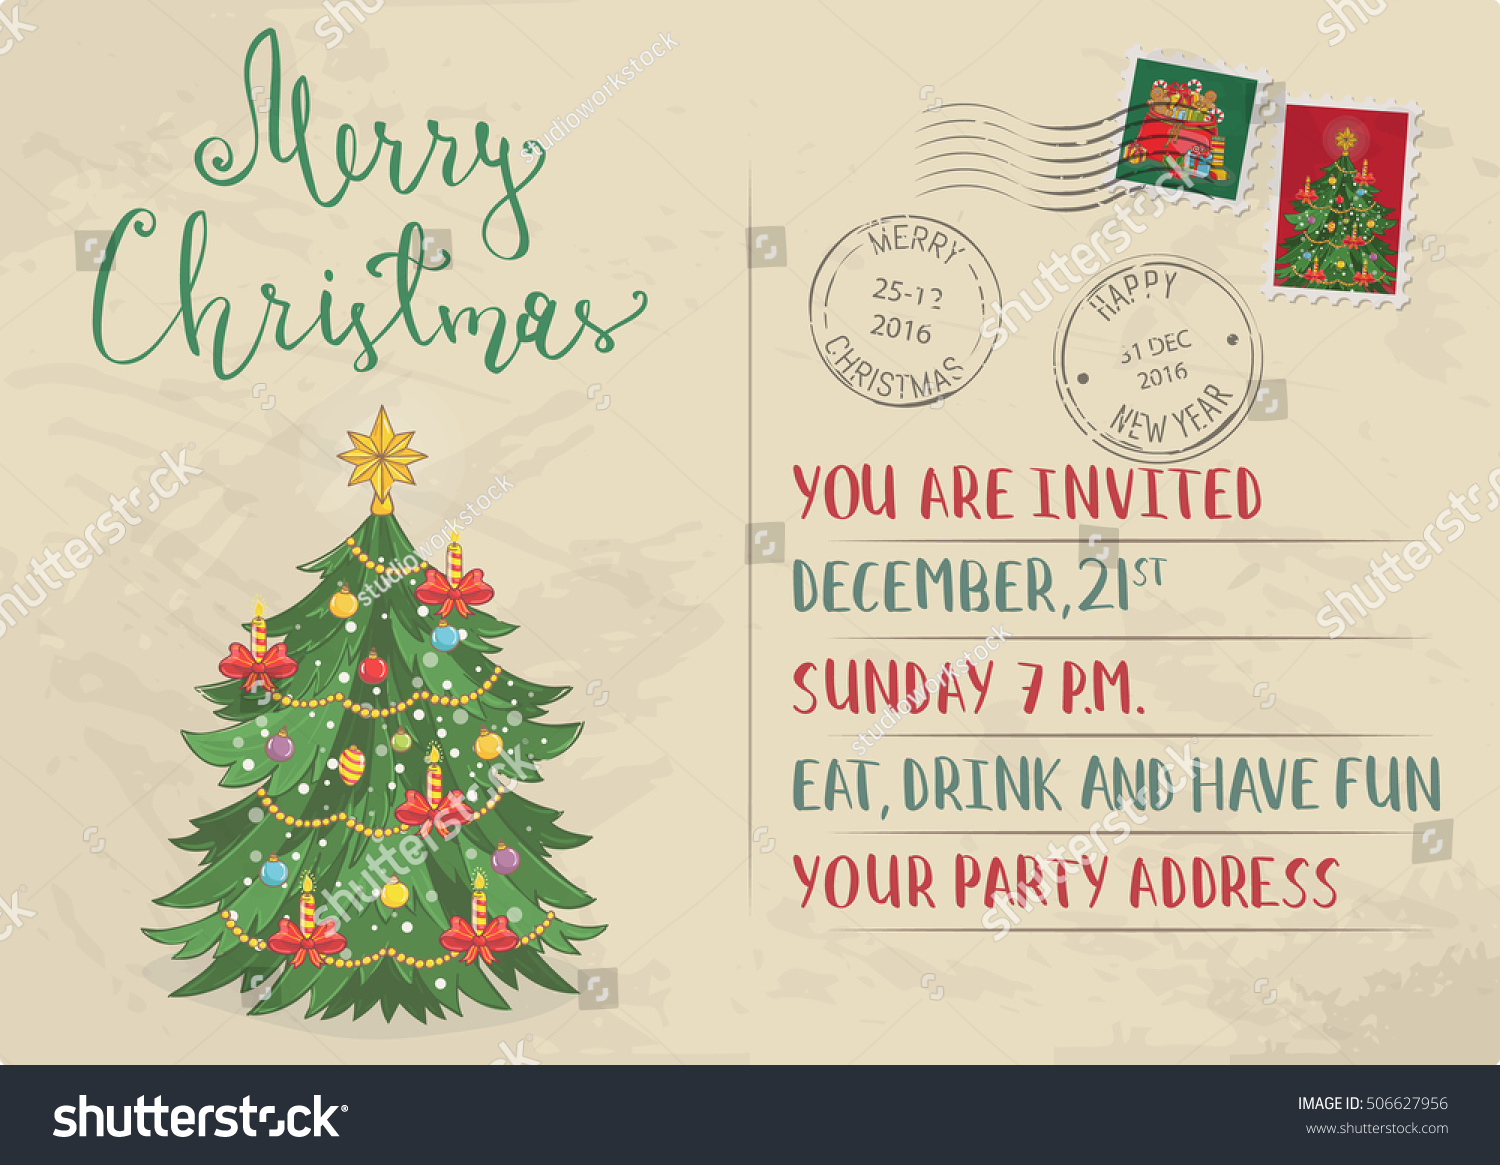 Christmas card vintage design vector merry stock vector 506627956 christmas card vintage design vector merry christmas and happy new year greetings card kristyandbryce Images